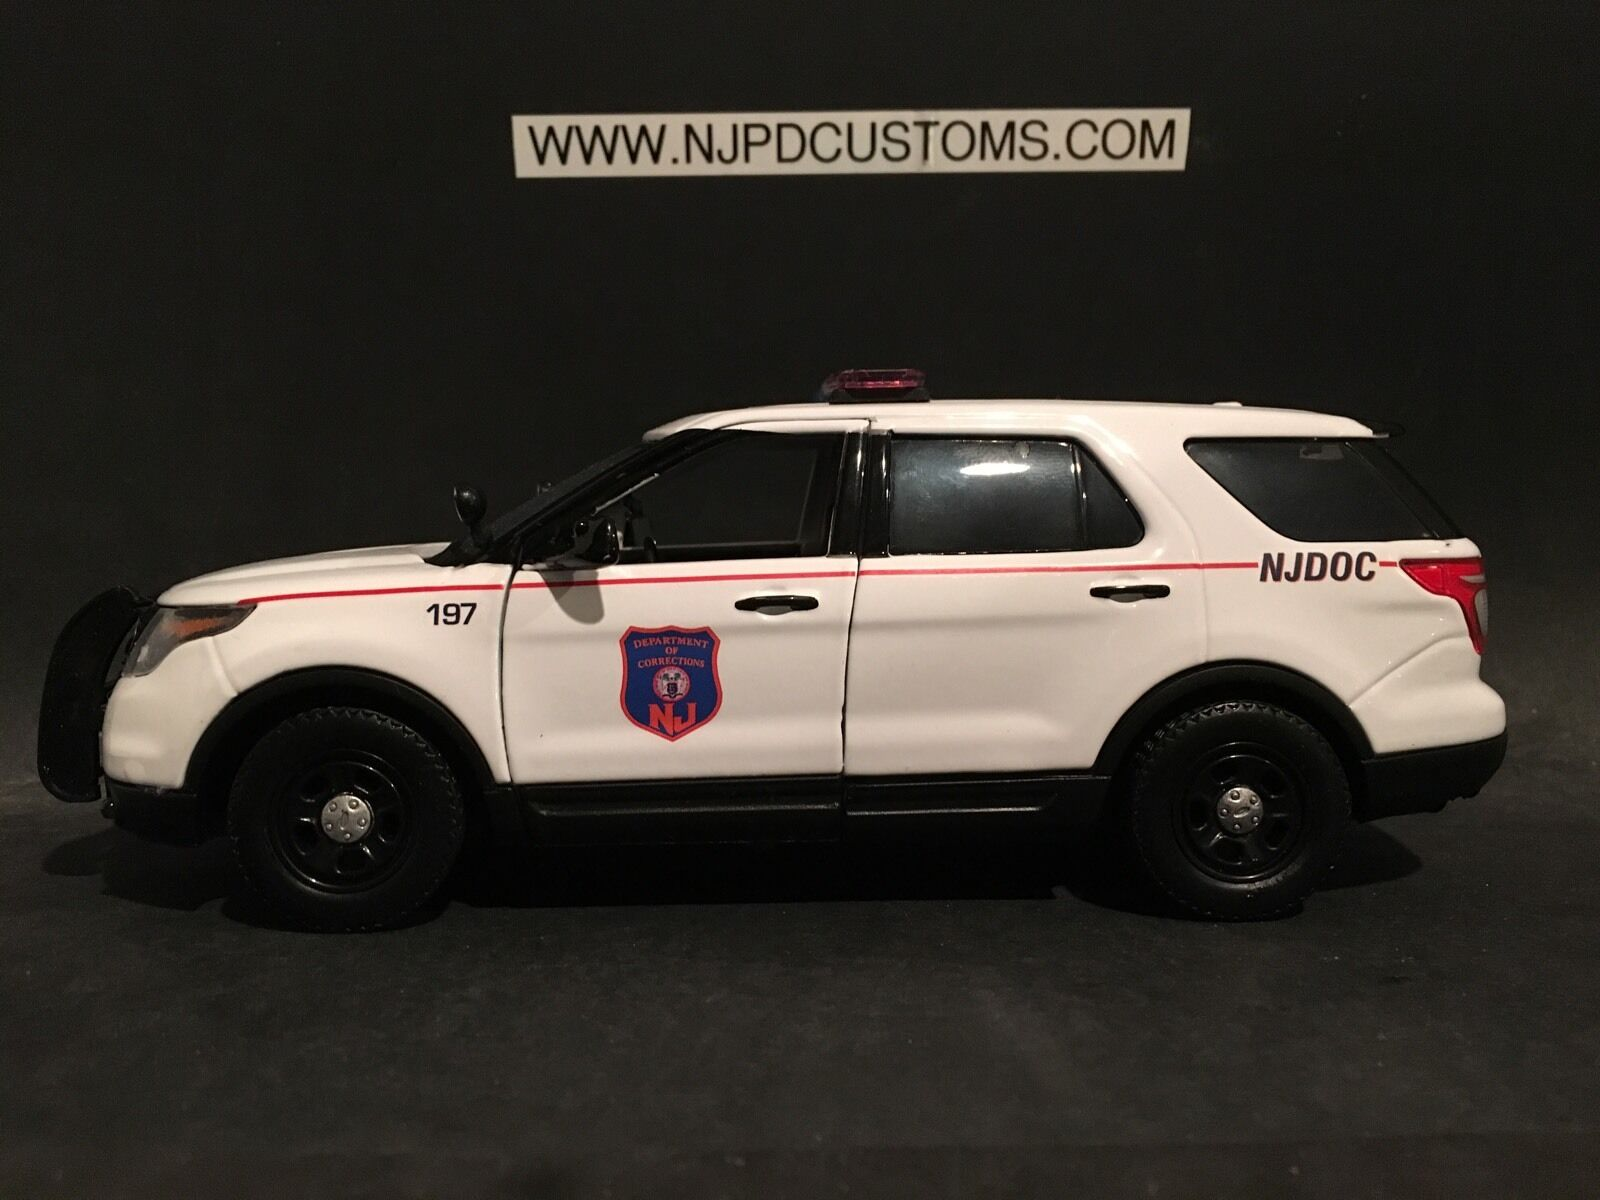 NJDOC 1 24 Scale Ford Explorer Utility Interceptor Police Car